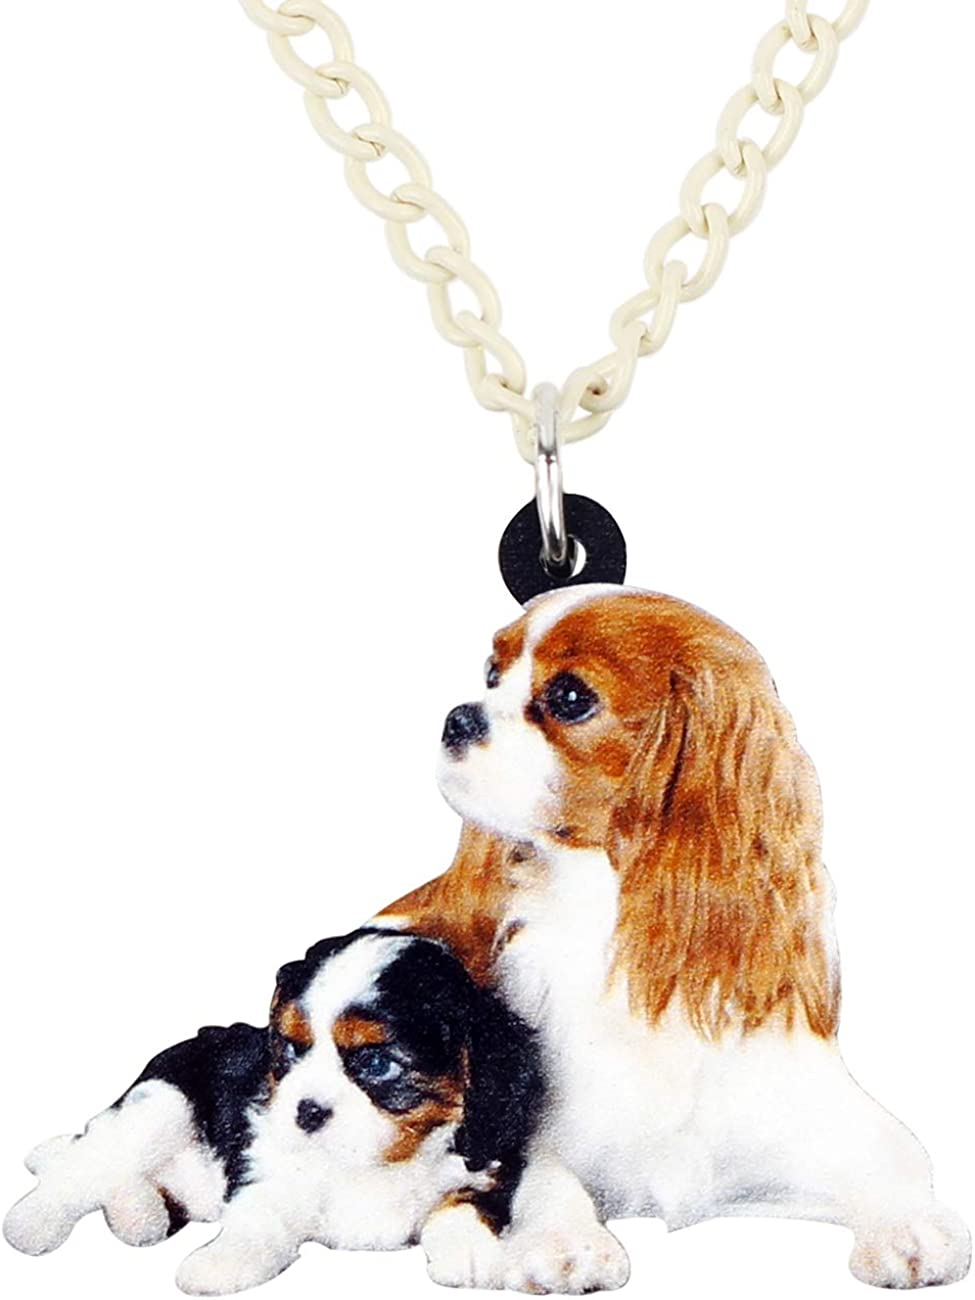 DUOWEI Brown Cavalier King Charles Dog Pendant Necklace Acrylic Cute Pets Jewelry Gifts for Women Girls Teens